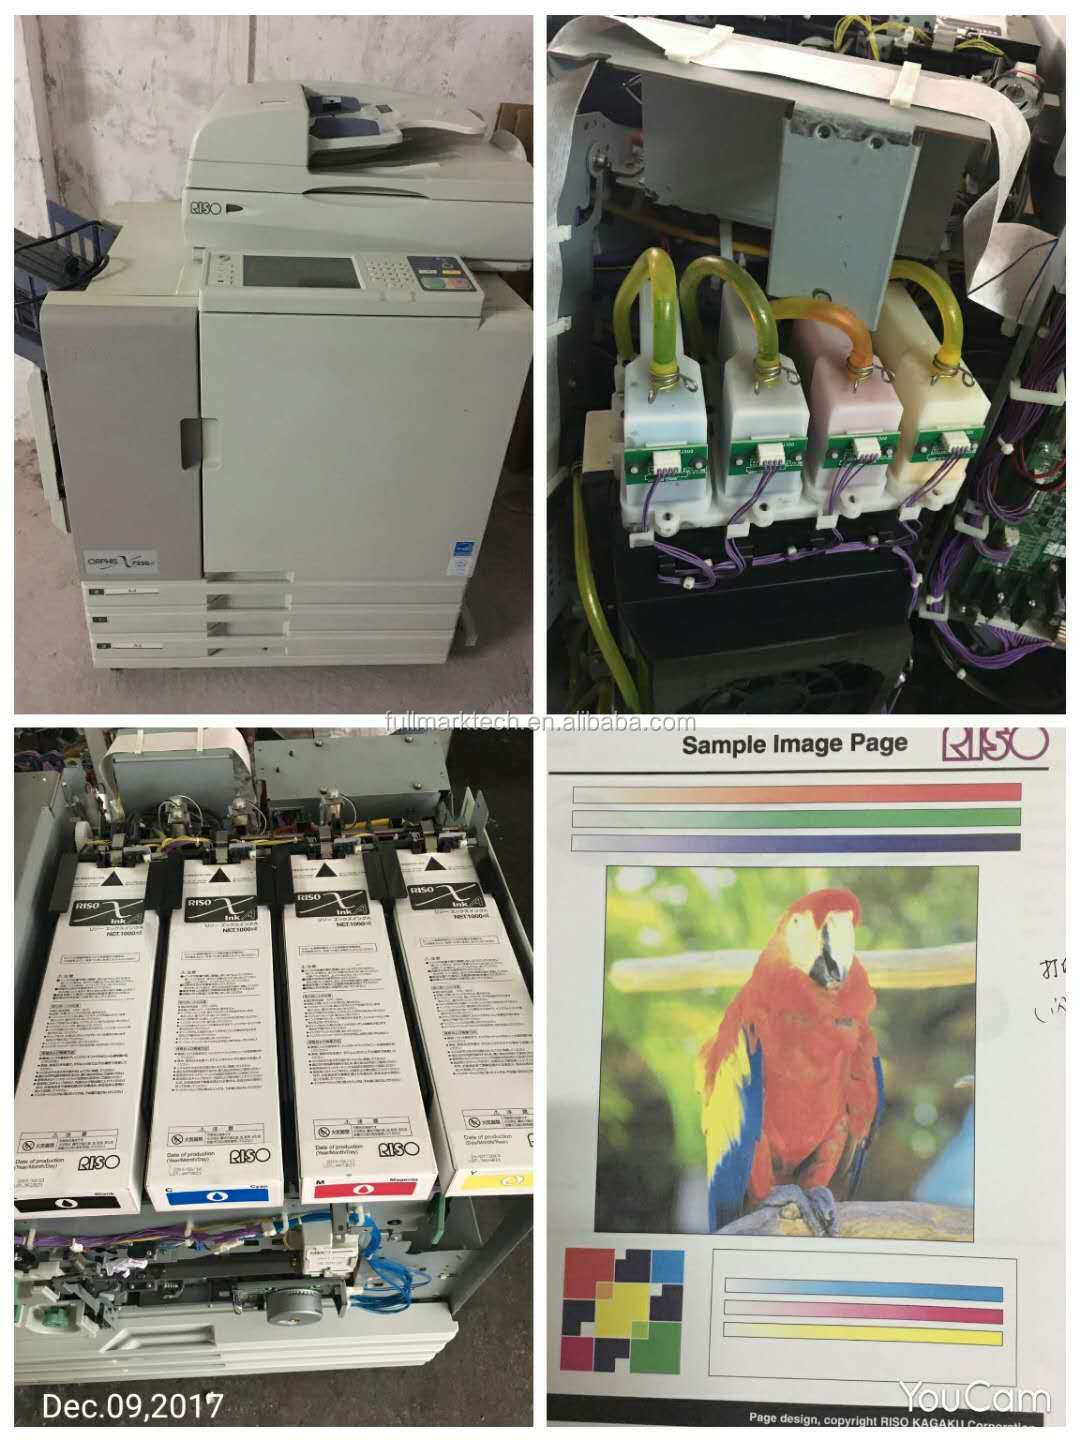 used and reconditioned risos comcolor machine 7150/7250  four color inkjet printer for risos printing